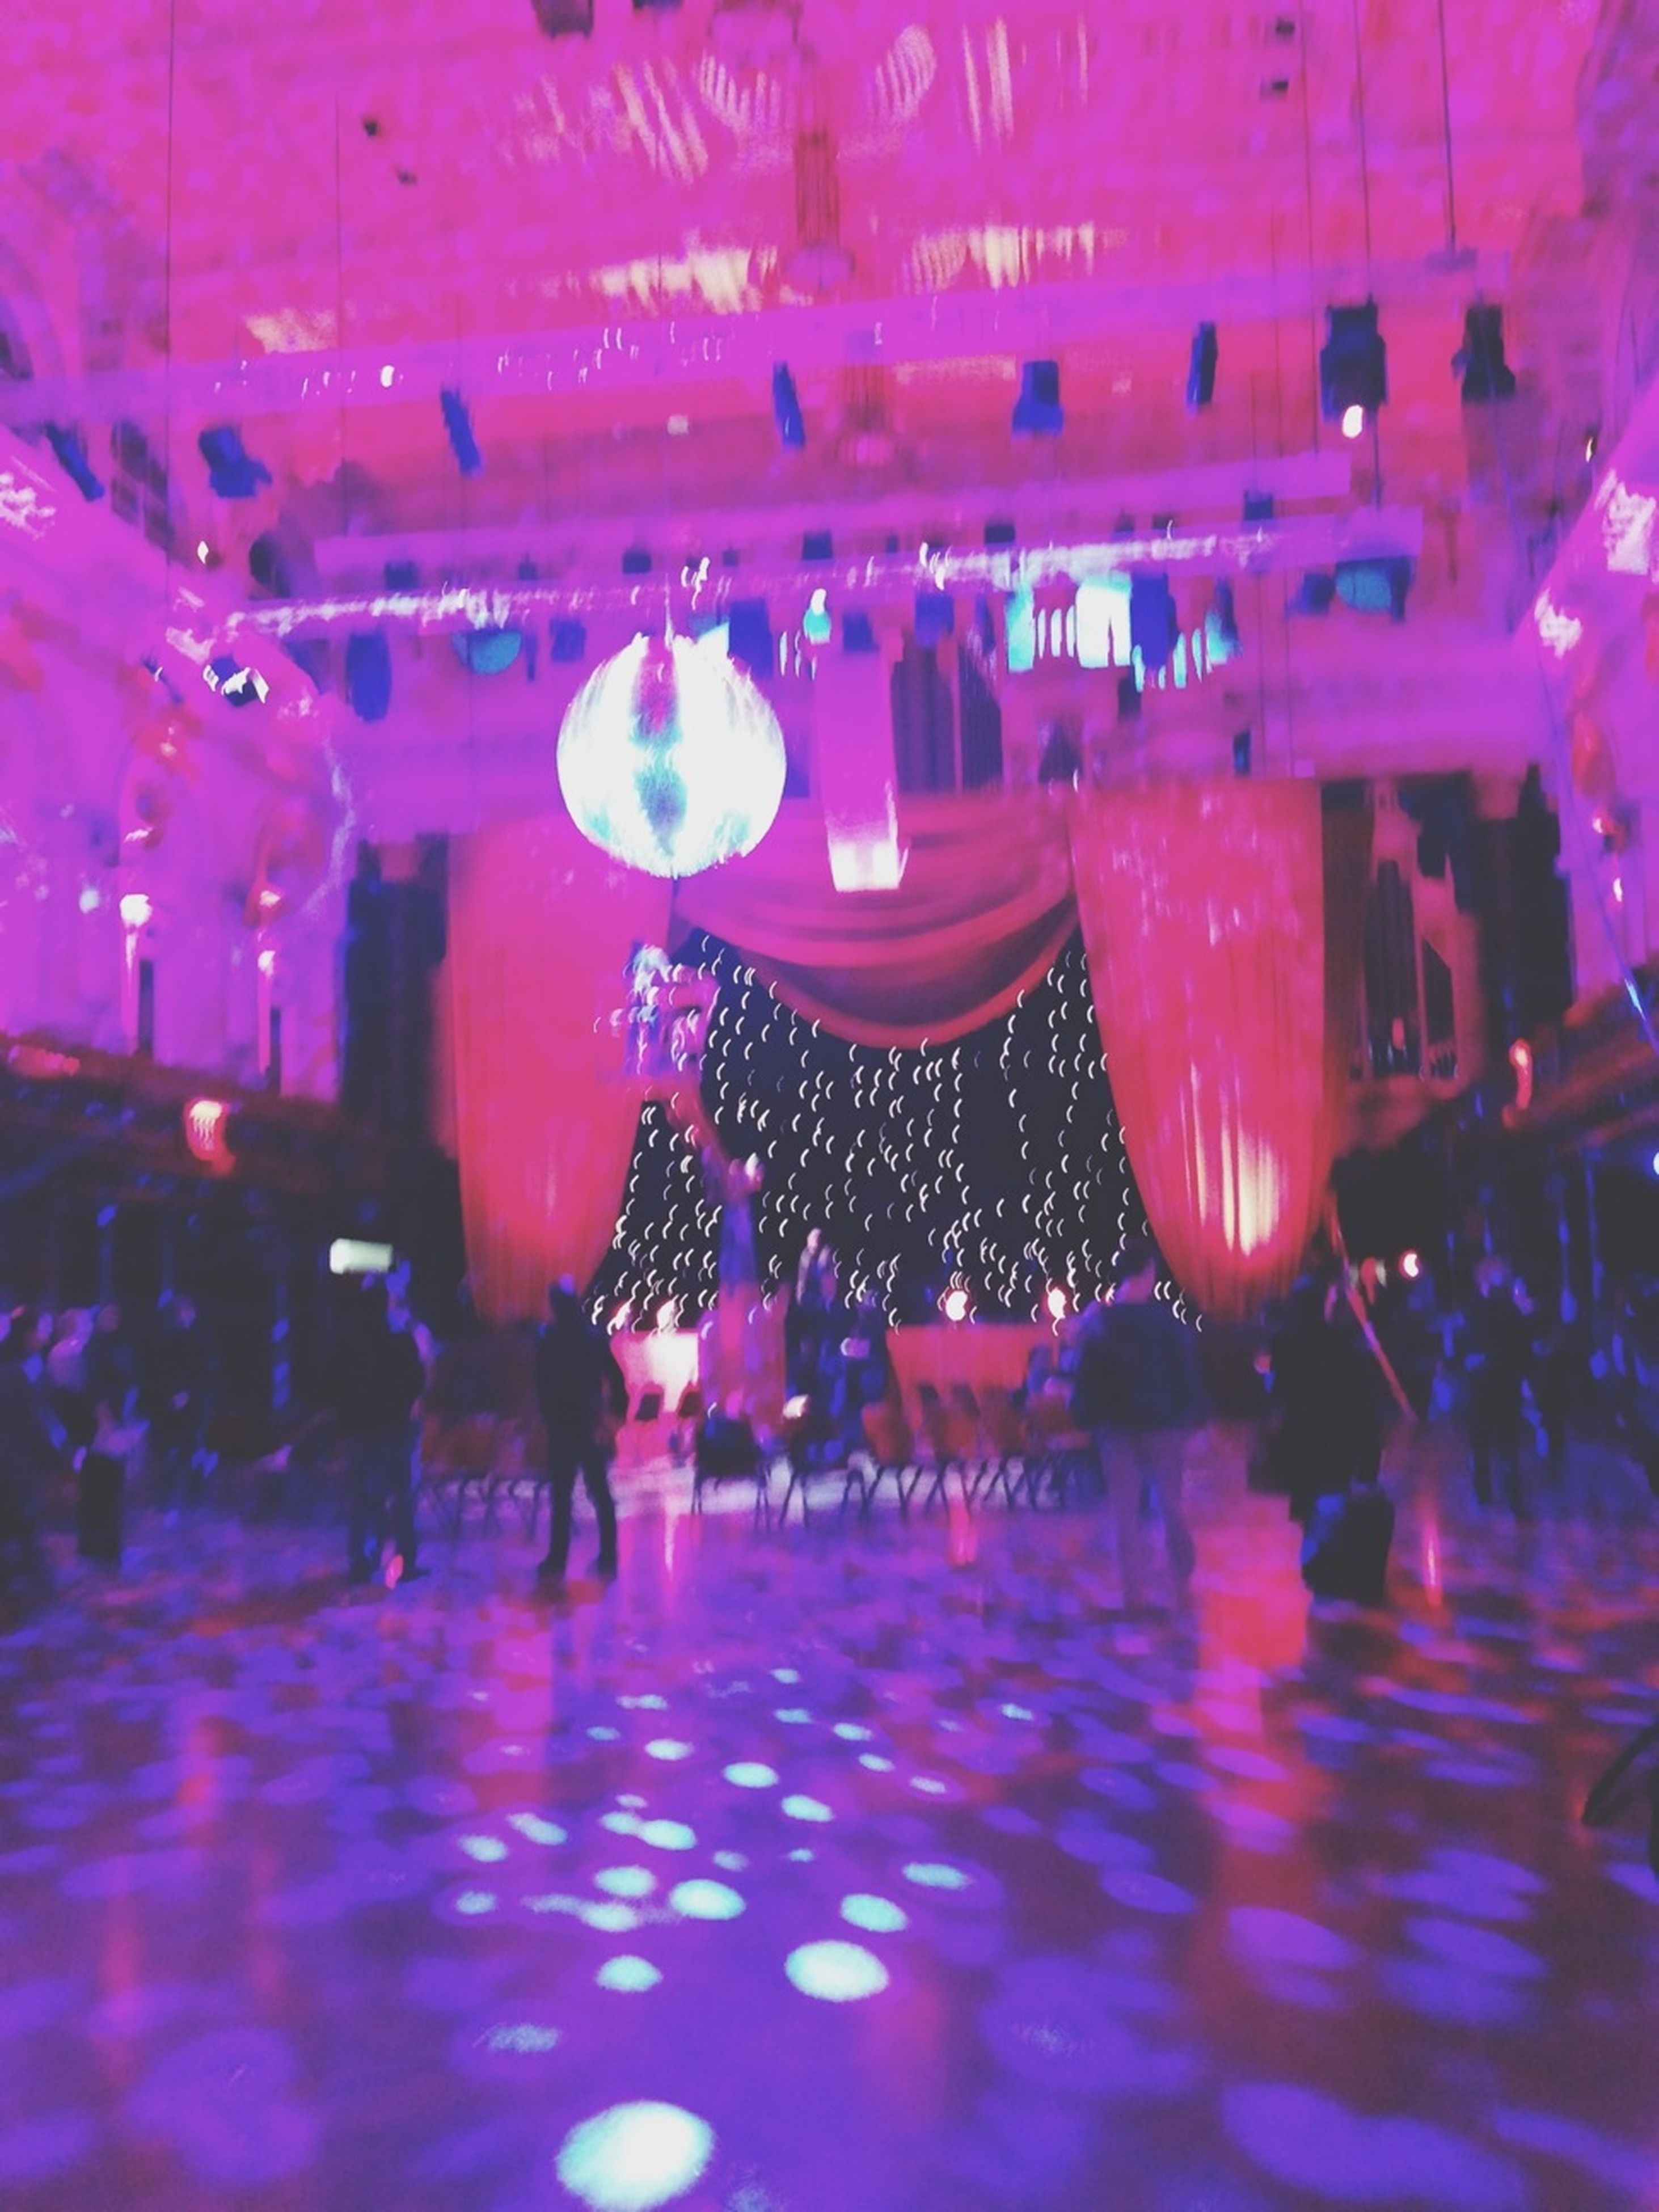 large group of people, illuminated, indoors, person, arts culture and entertainment, celebration, men, lifestyles, leisure activity, enjoyment, night, crowd, lighting equipment, decoration, built structure, fun, pink color, reflection, mixed age range